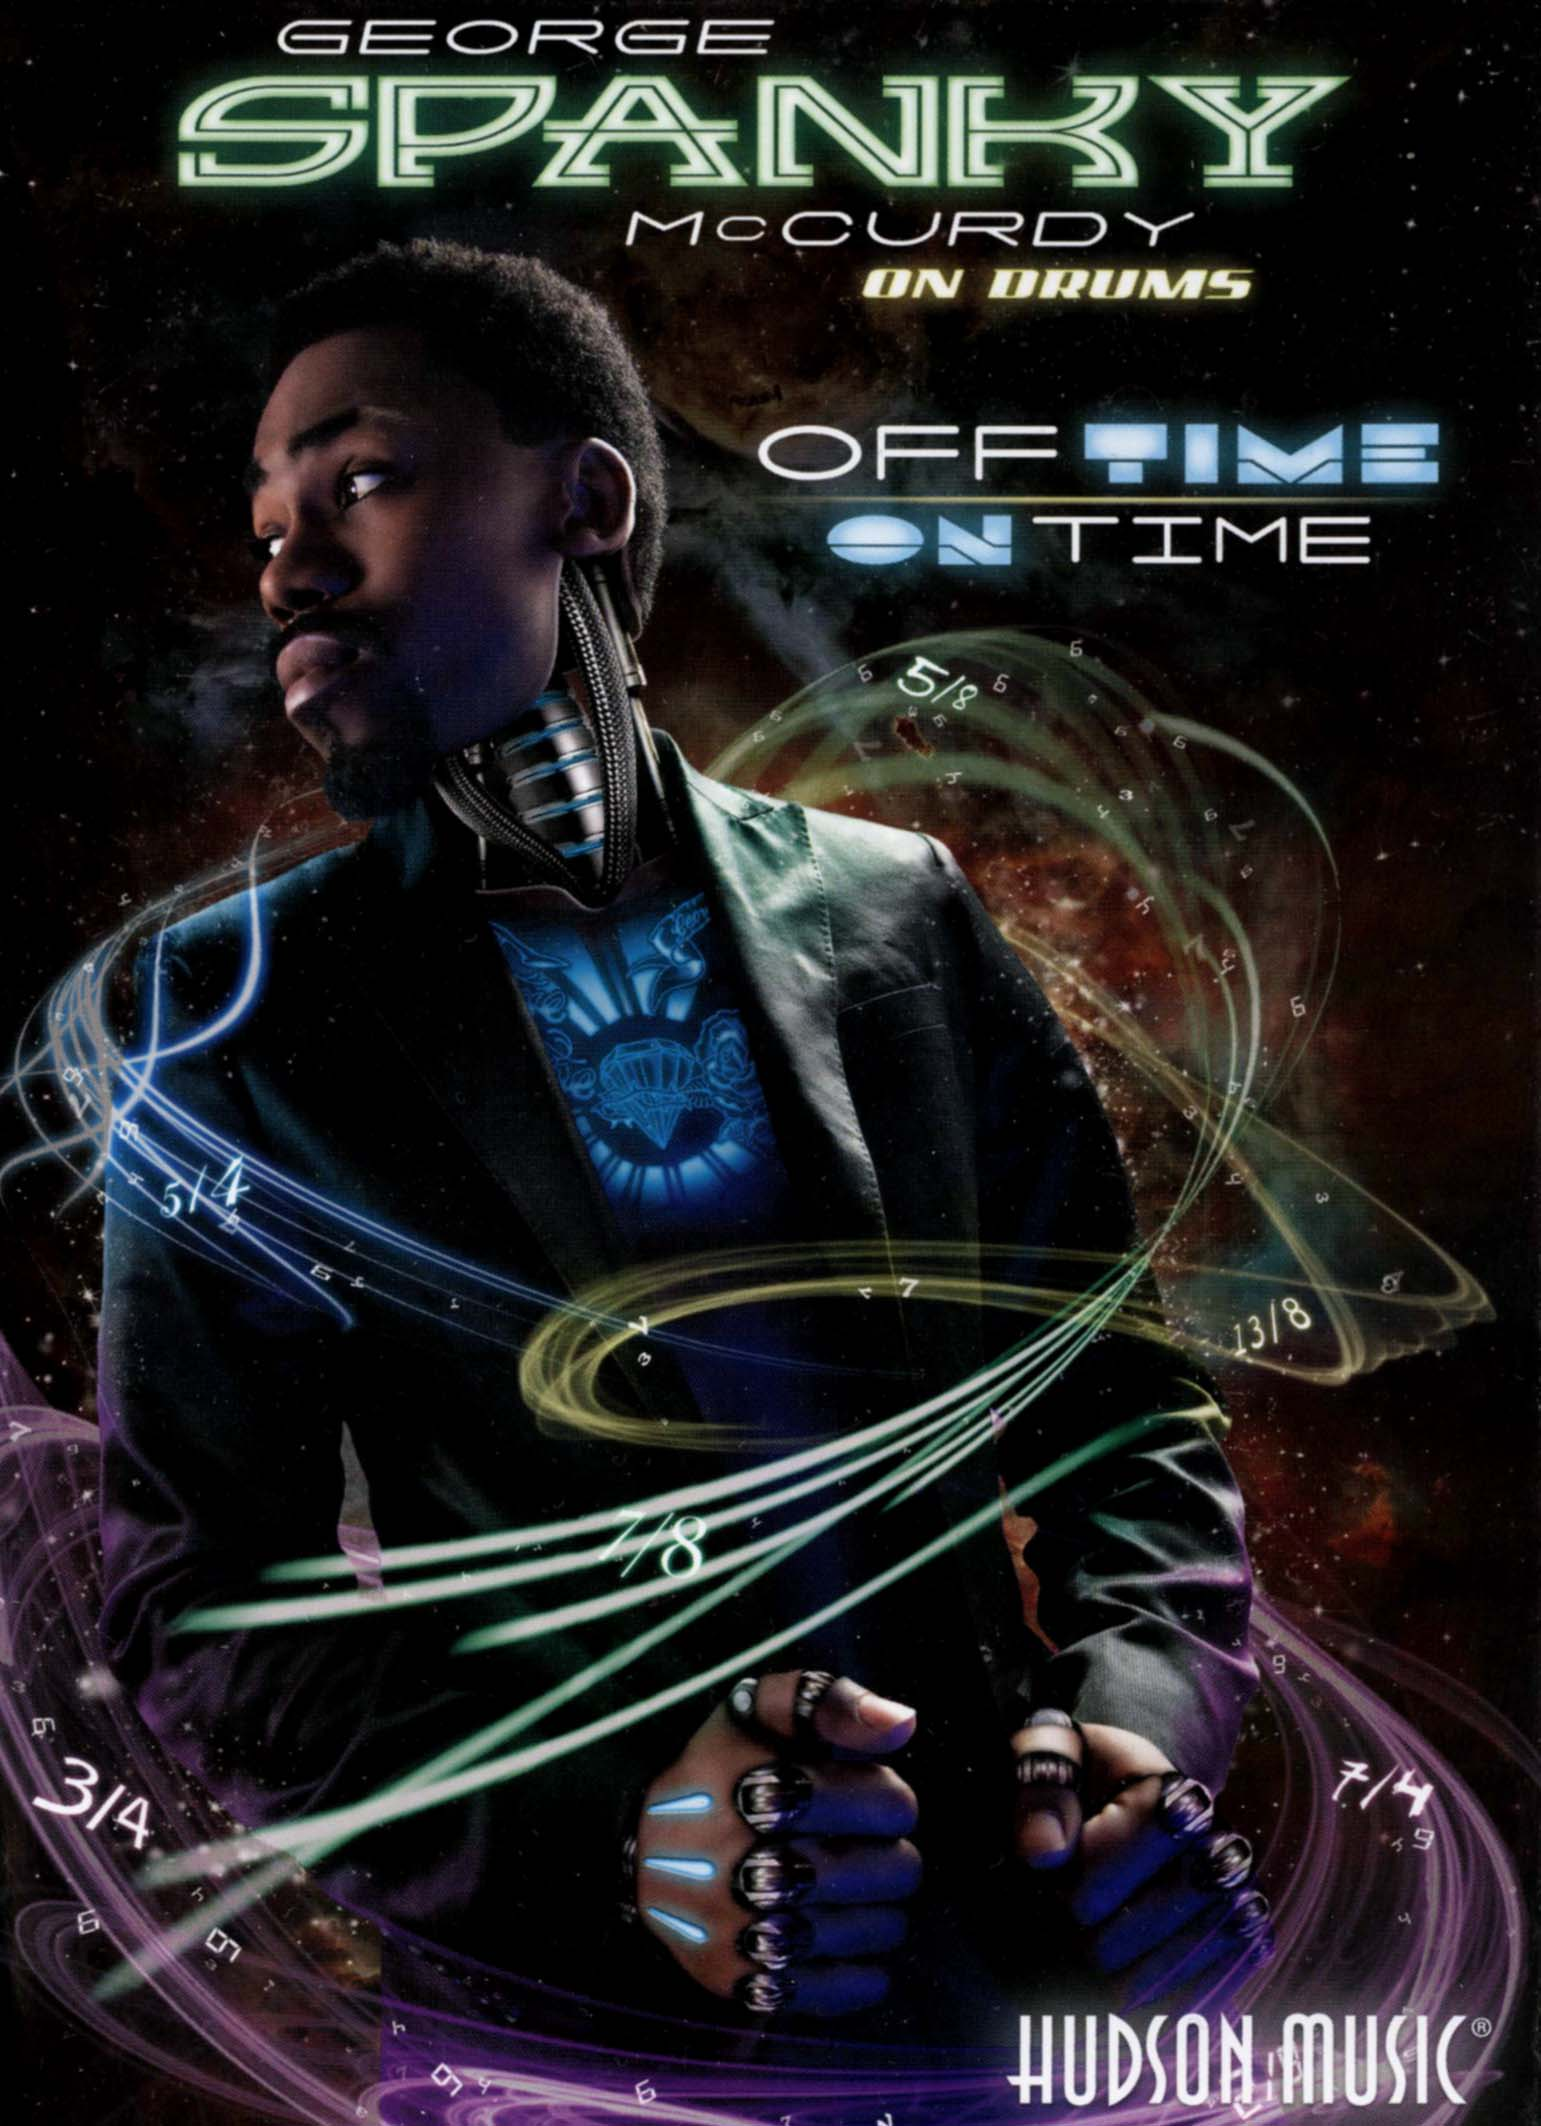 George Spanky McCurdy on Drums: Off Time/On Time